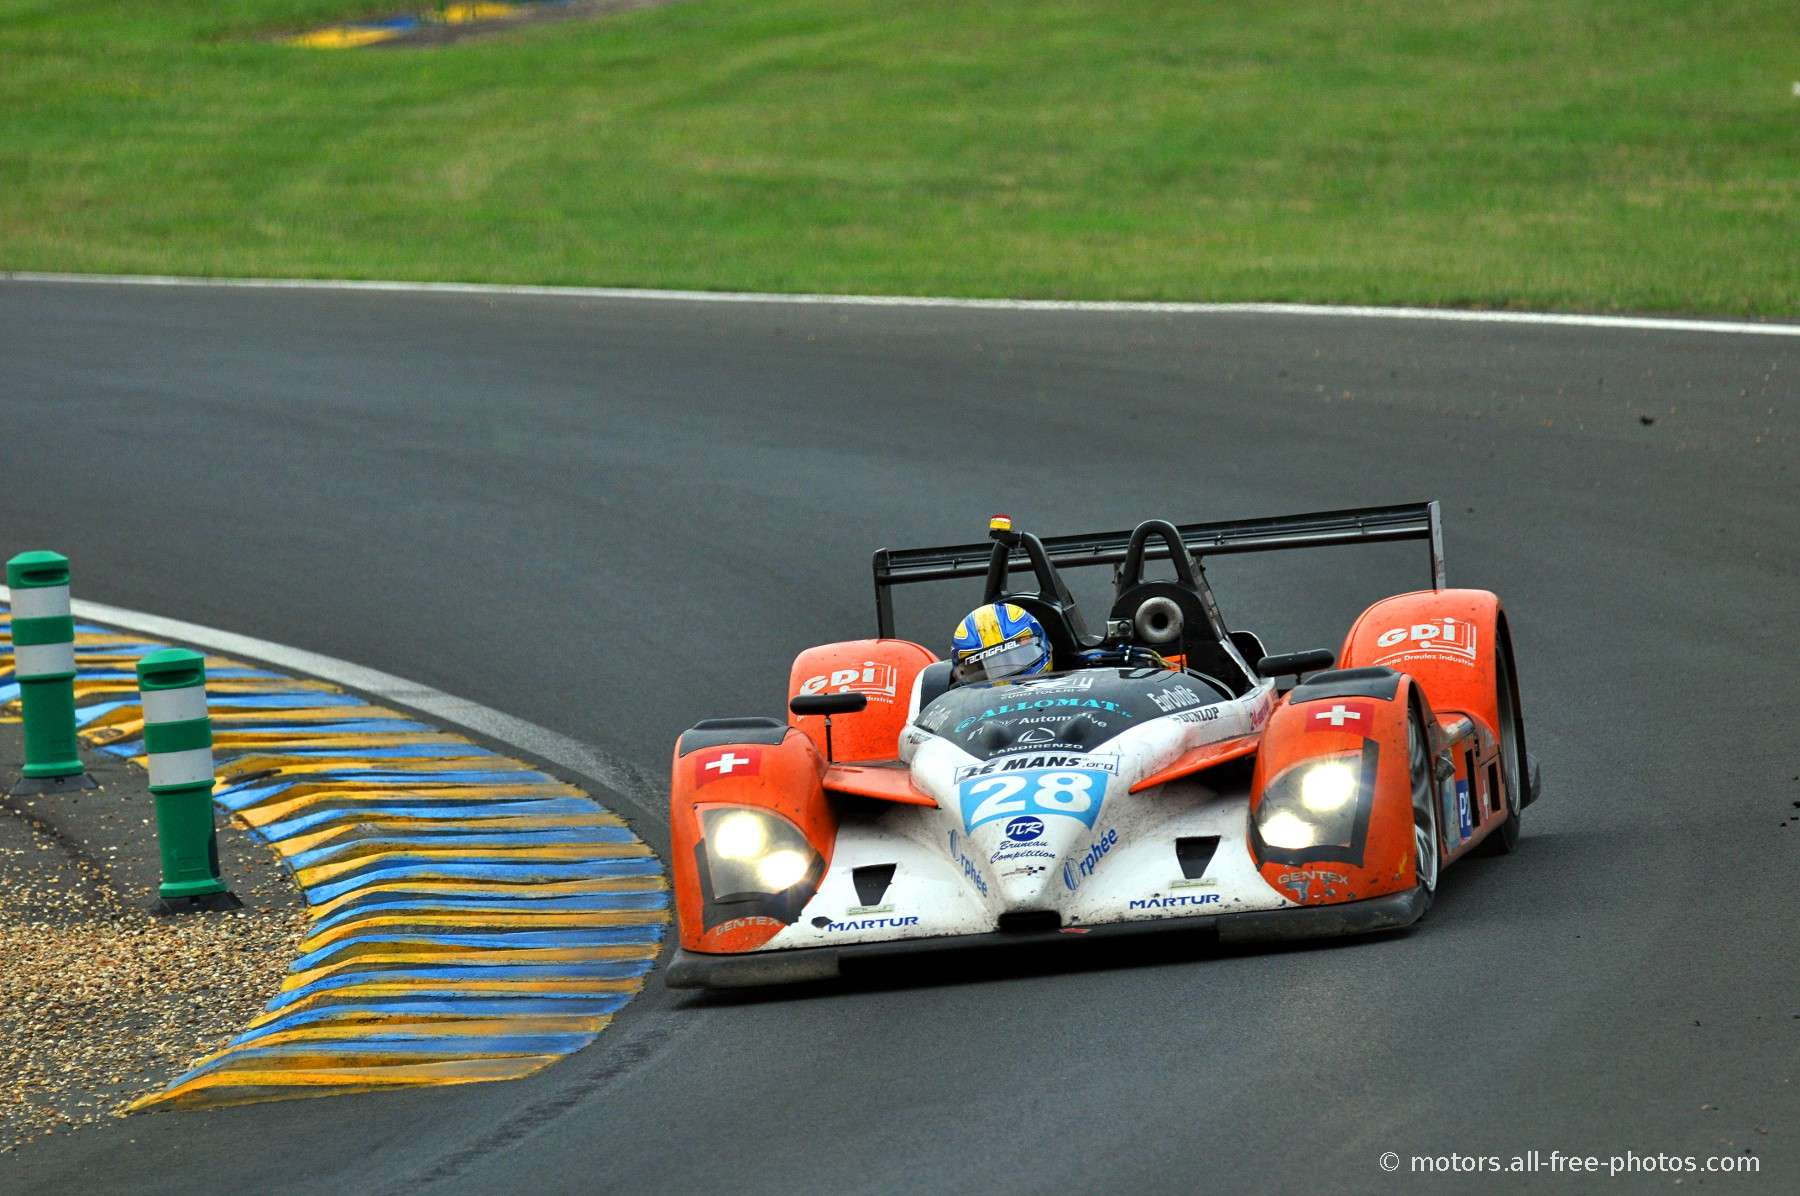 Radical SR9 Judd - Team Race Performance